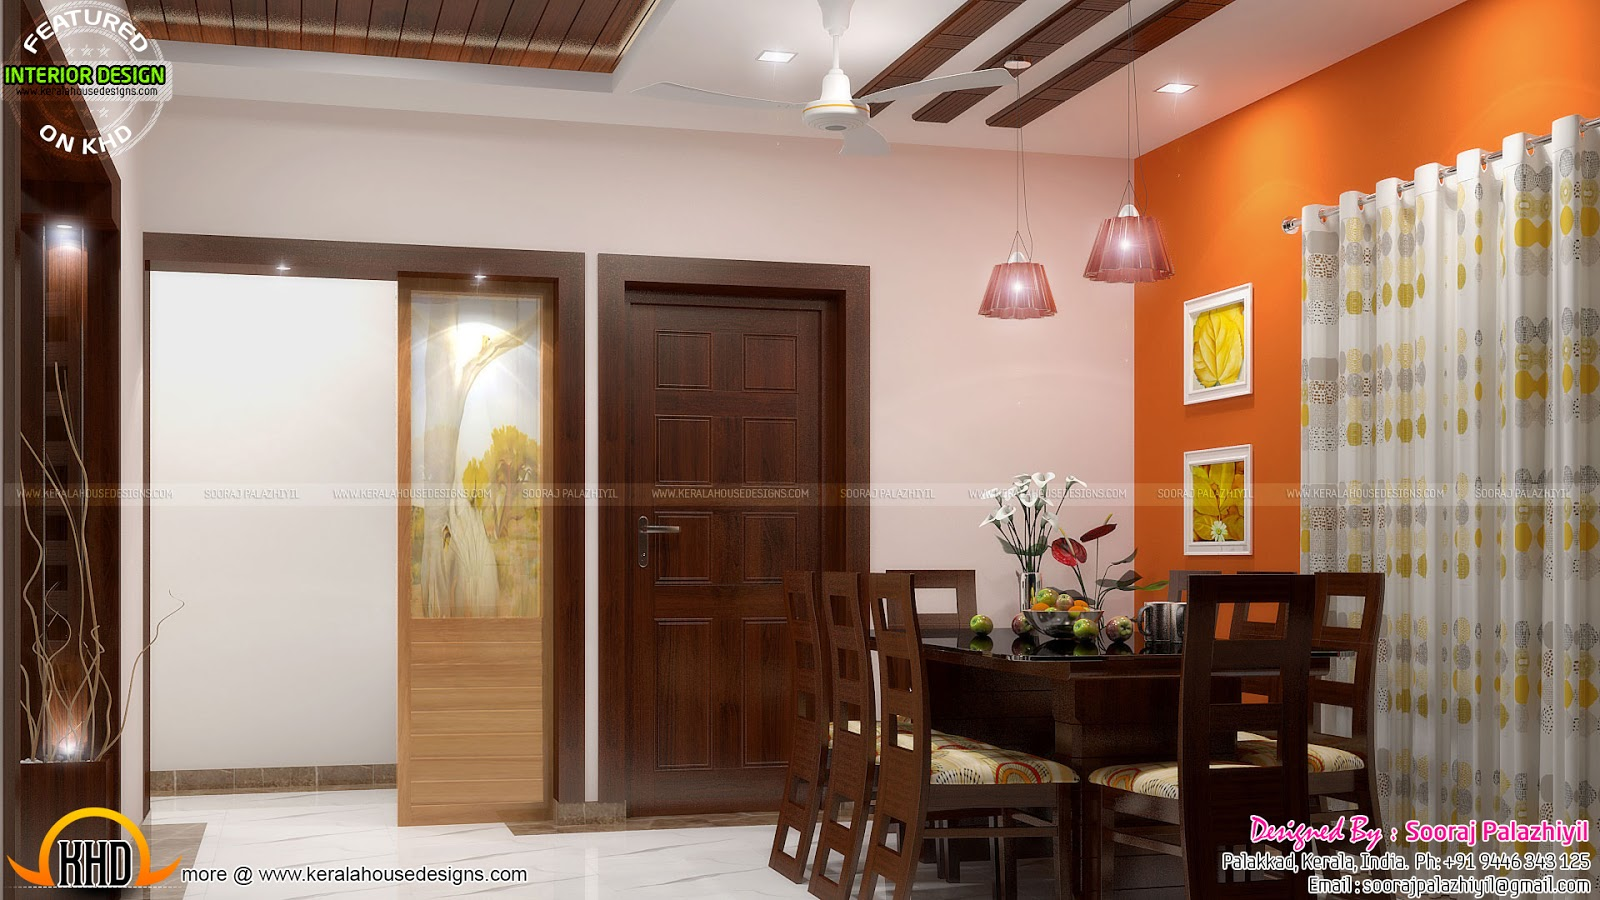 Apartment Interior Design Kerala wonderful apartment interior design kerala home and decorating